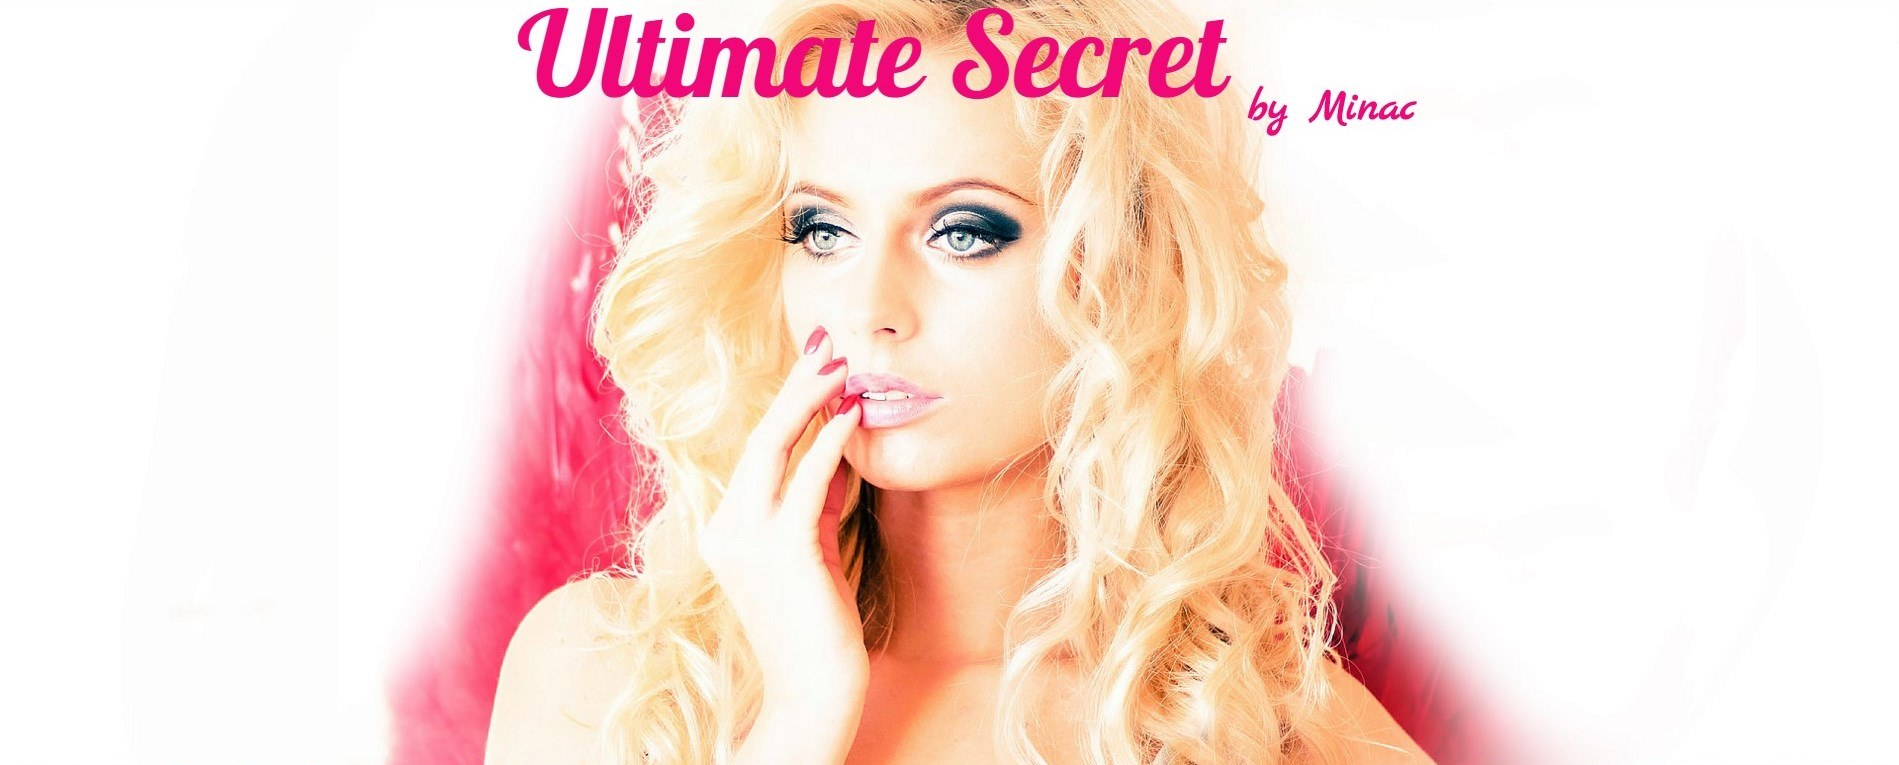 Ultimate Secret 11